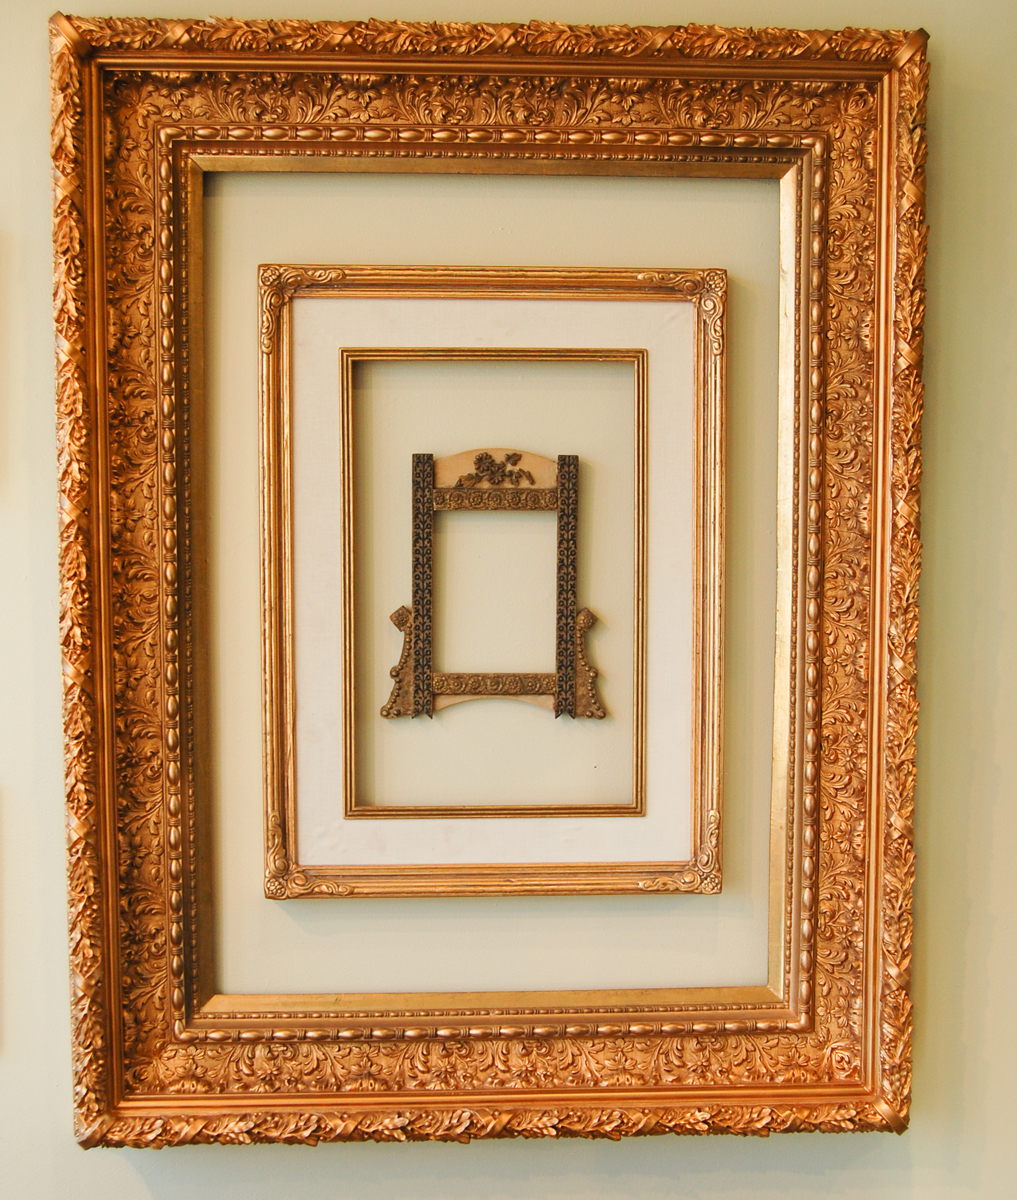 Frames and Art For Sale - Dry Creek Gold Leaf Frame Makers